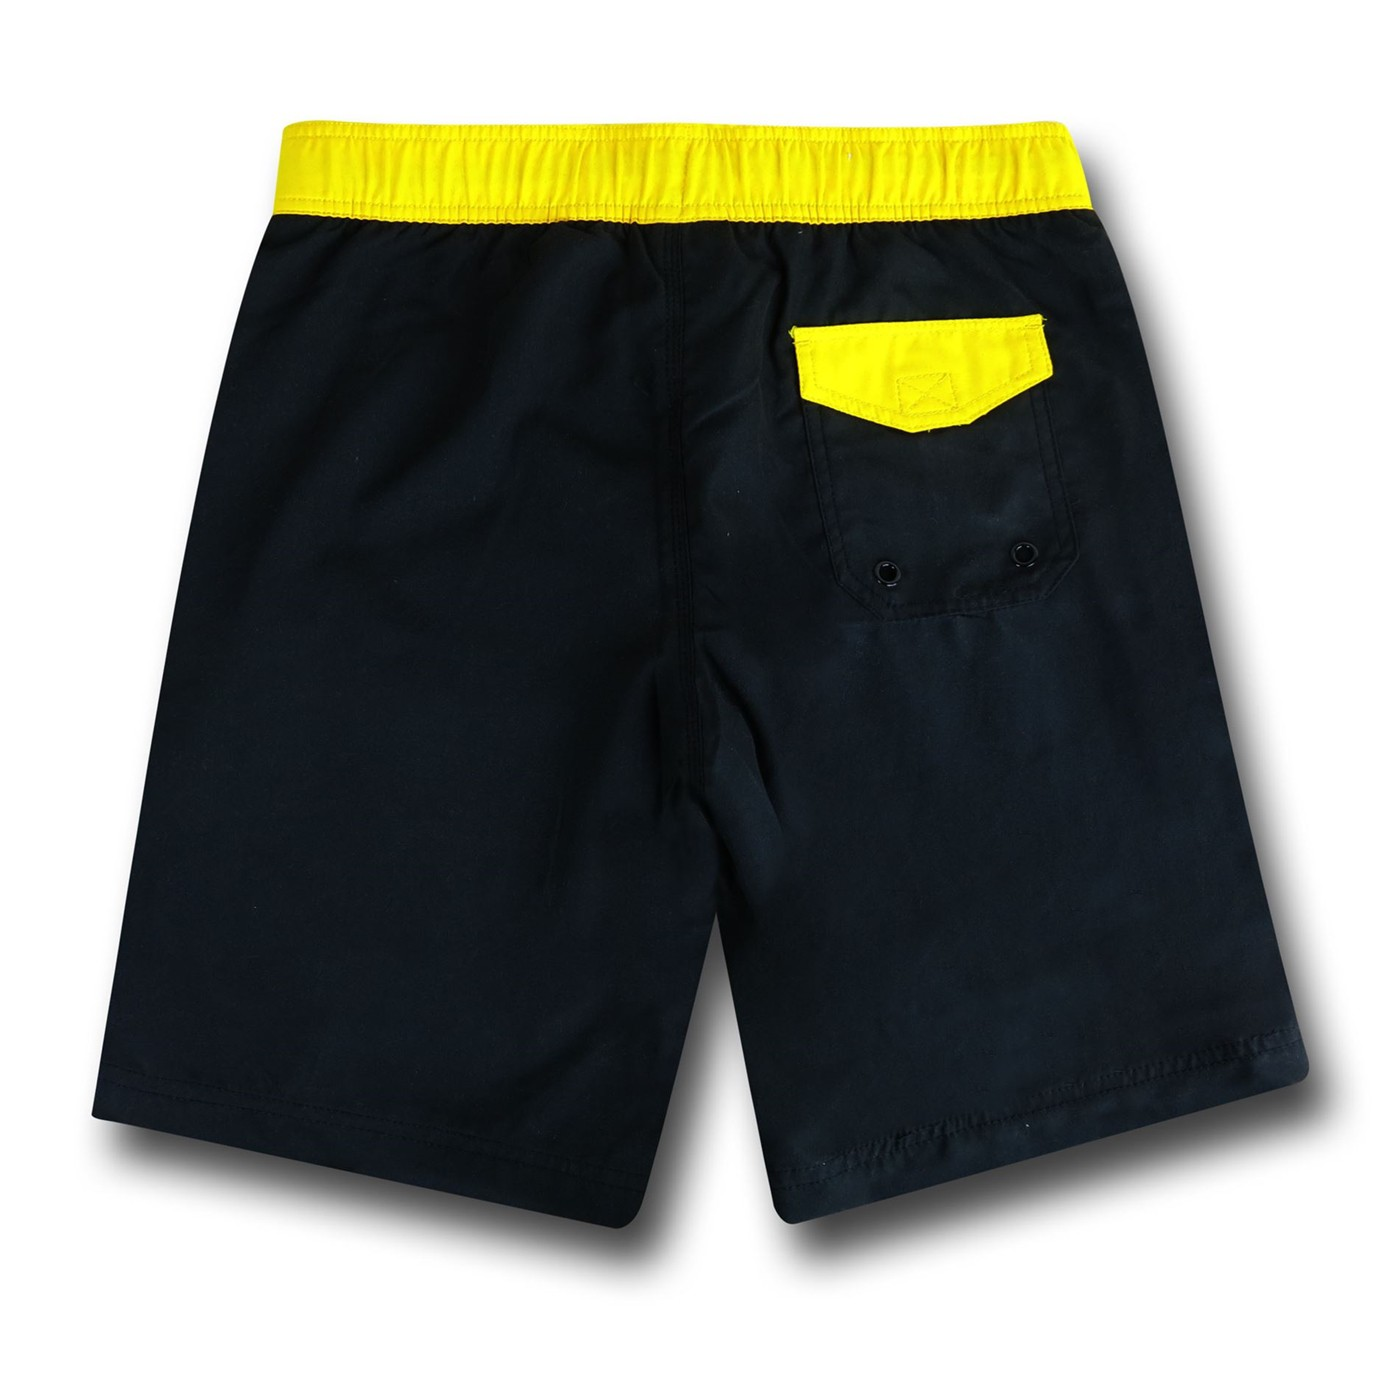 Batman Symbol Black Board Shorts w/ Rear Pocket